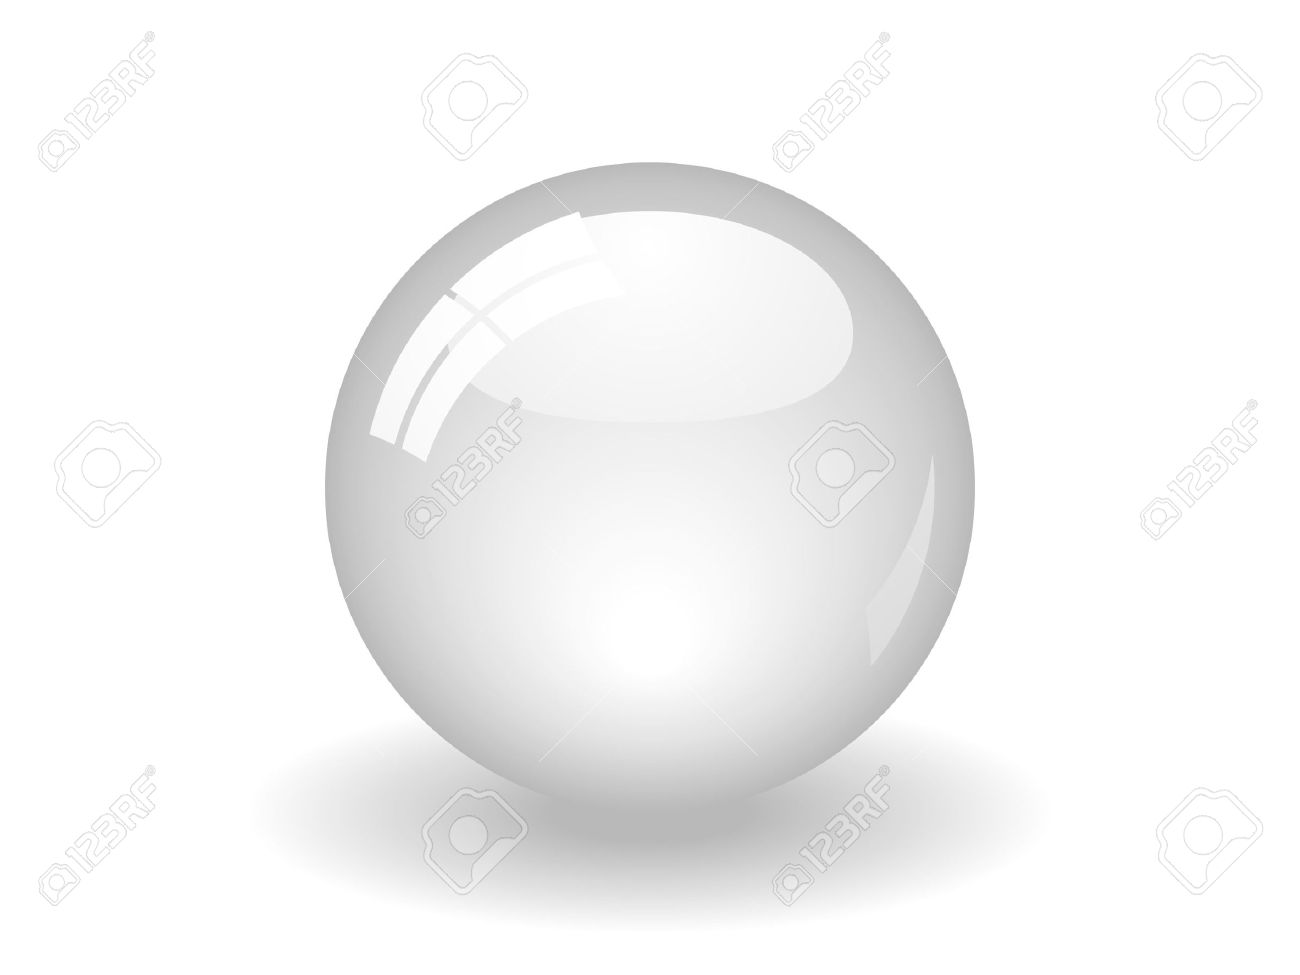 Illustration of a white ball. Available in jpeg and eps8 formats. - 5548473